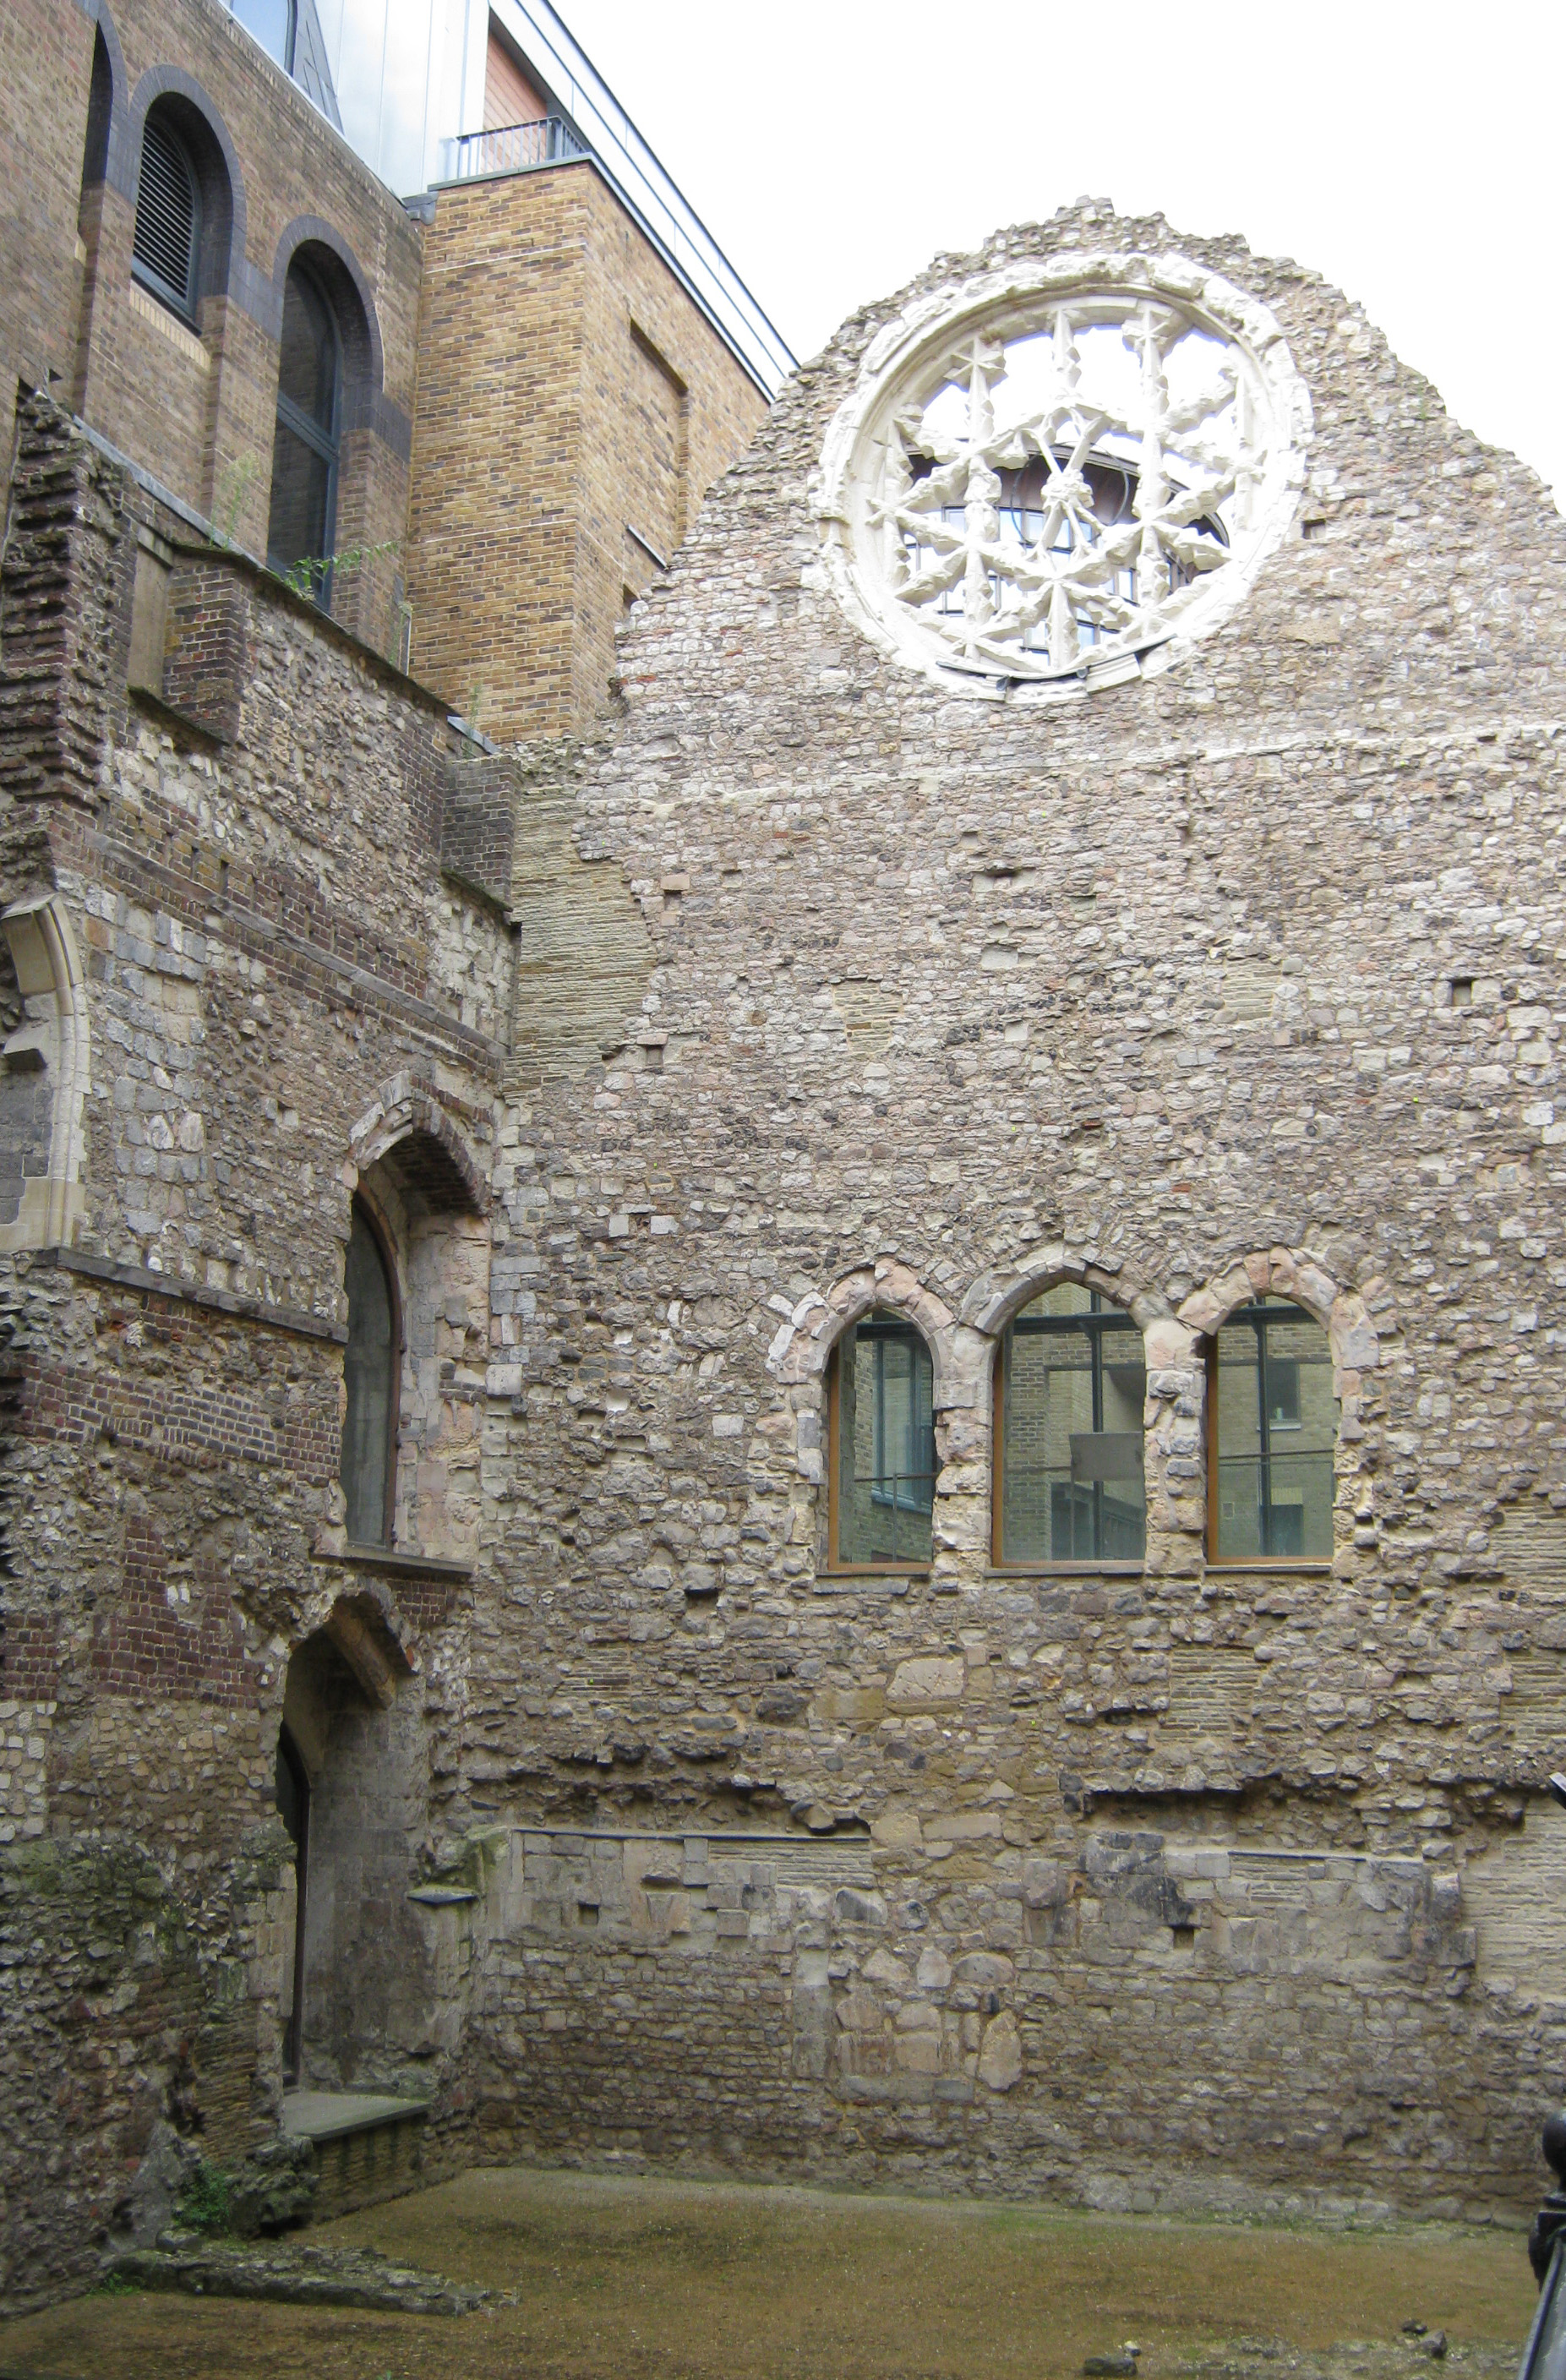 Remains of the Bishop of Winchester's Palace